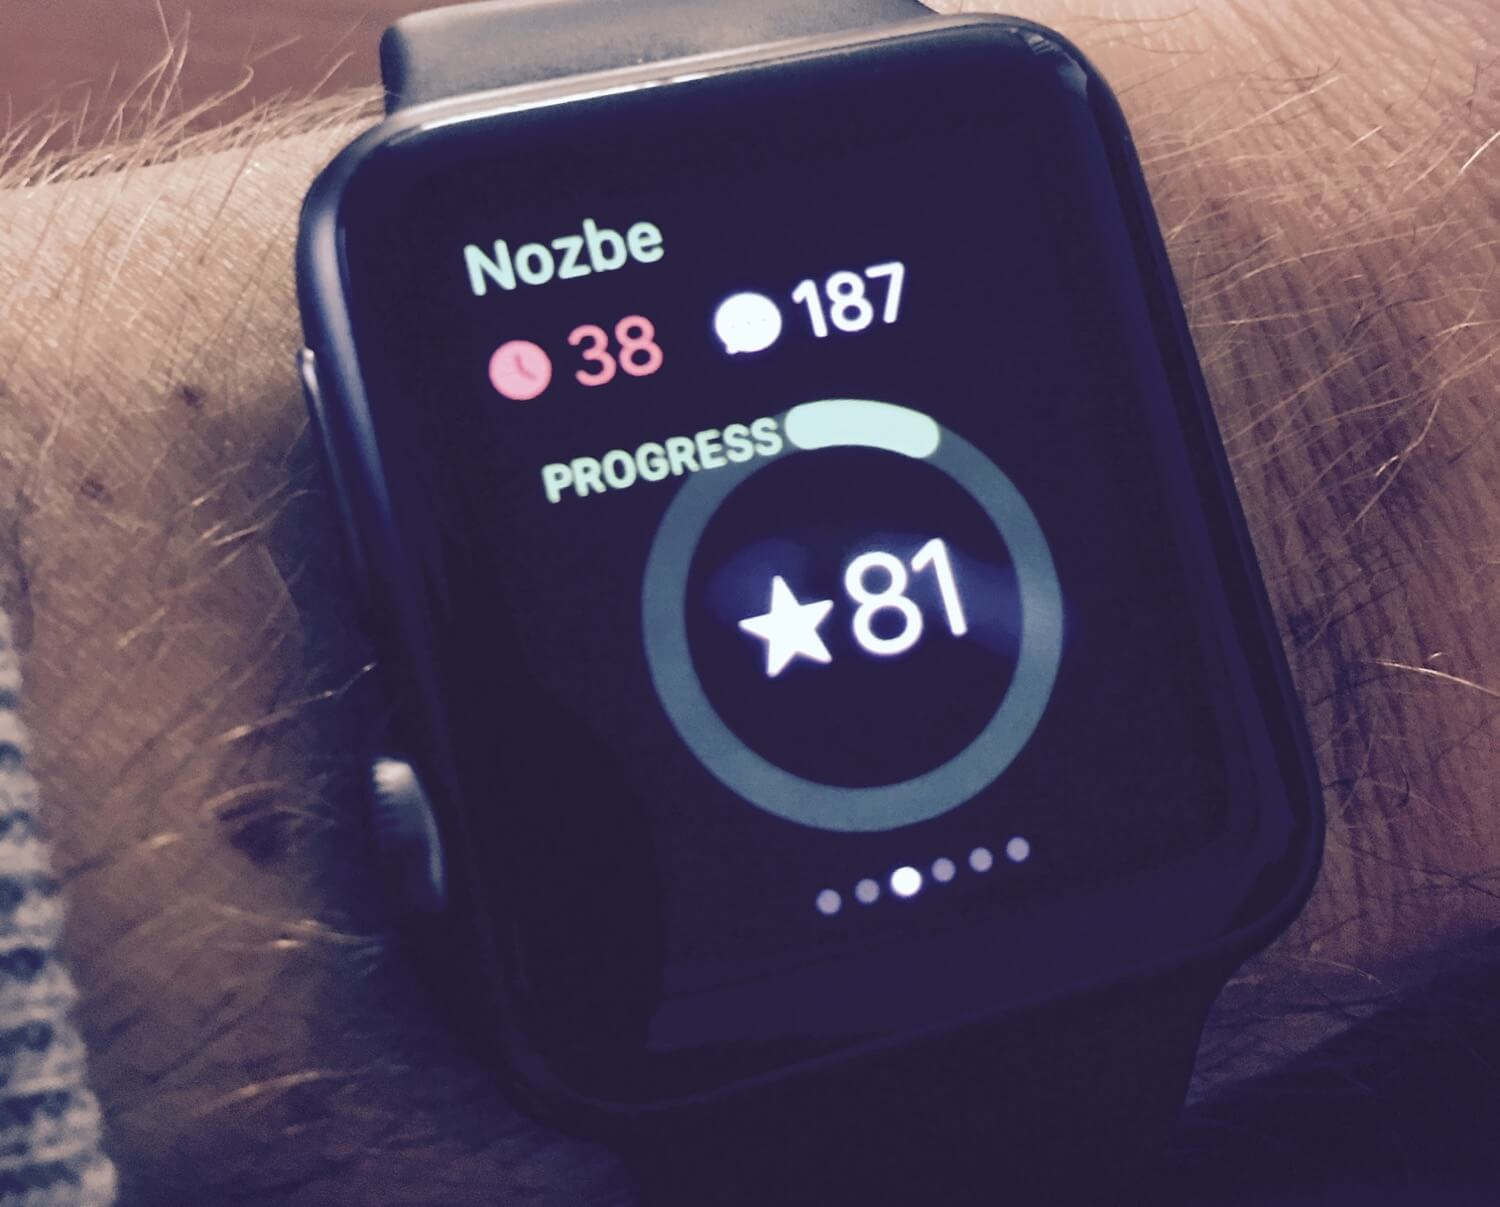 3 Things I love about the Apple Watch: communication, fitness & dashboard